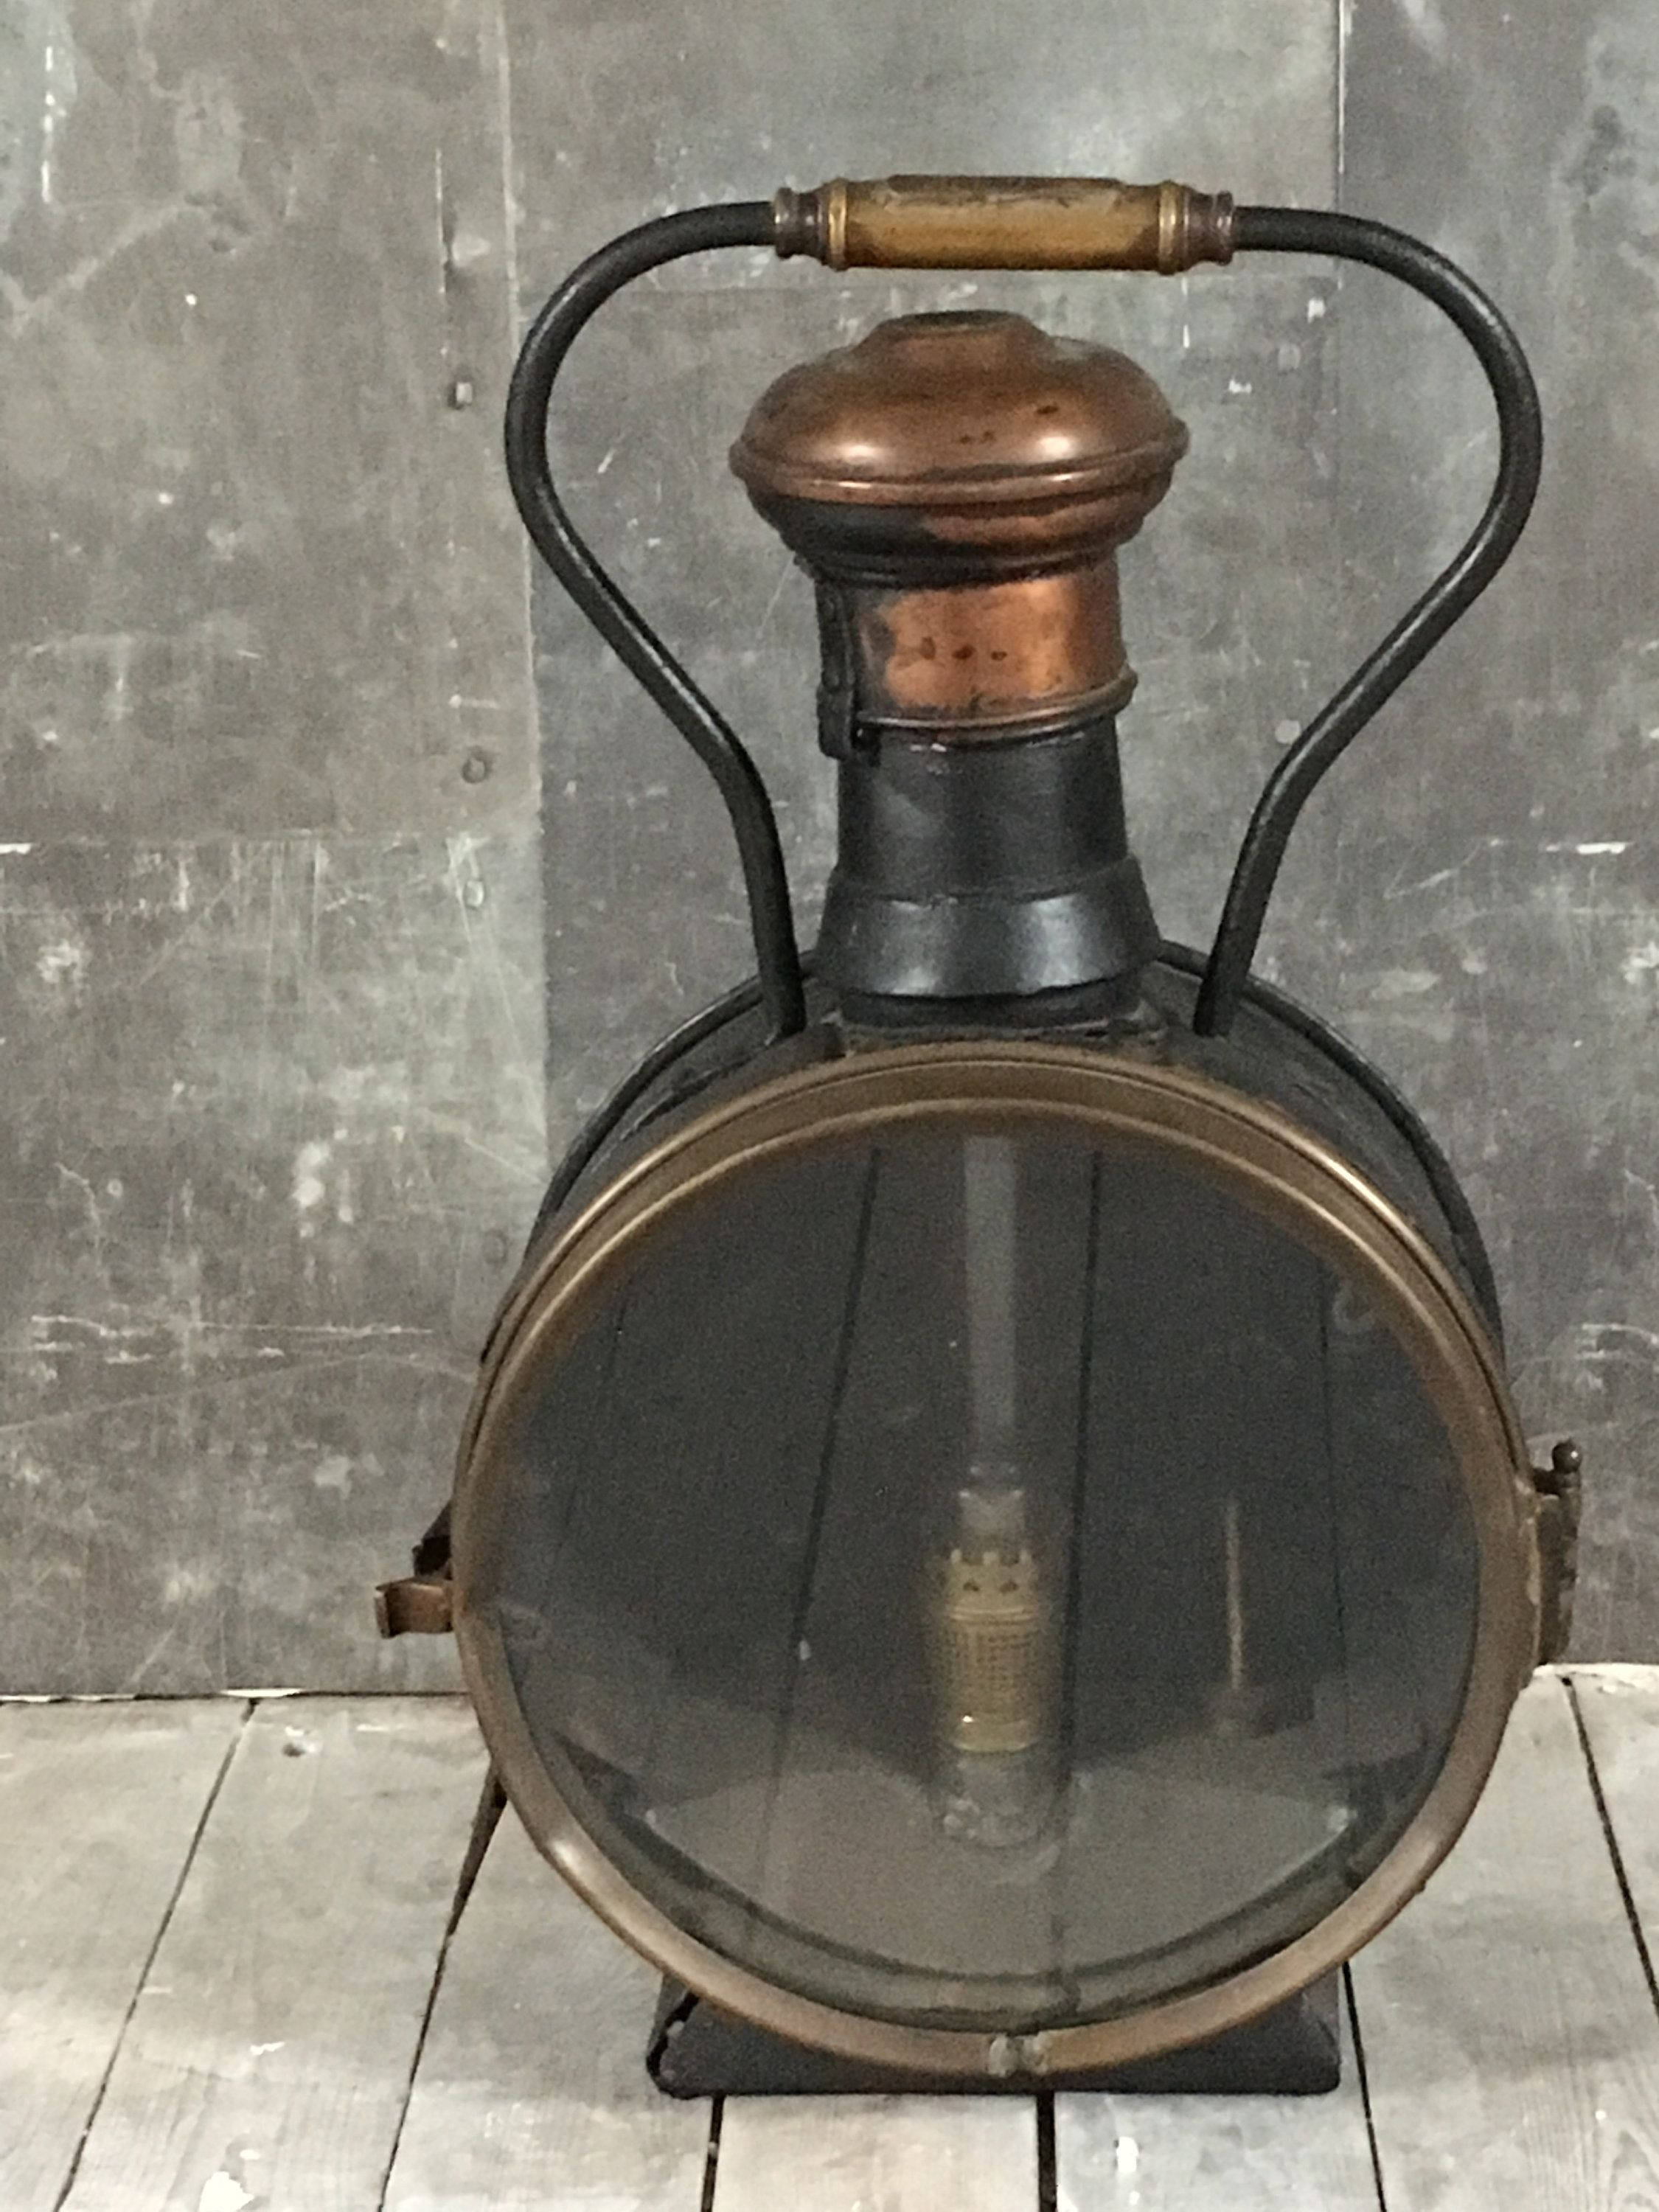 Train Station Light Steam Train Antique Oil Lamp Decor Metal Brass Industrial Train Light Railway Handle Front Light Lantern Oil Antique Oil Lamps Train Pictures Oil Lamps